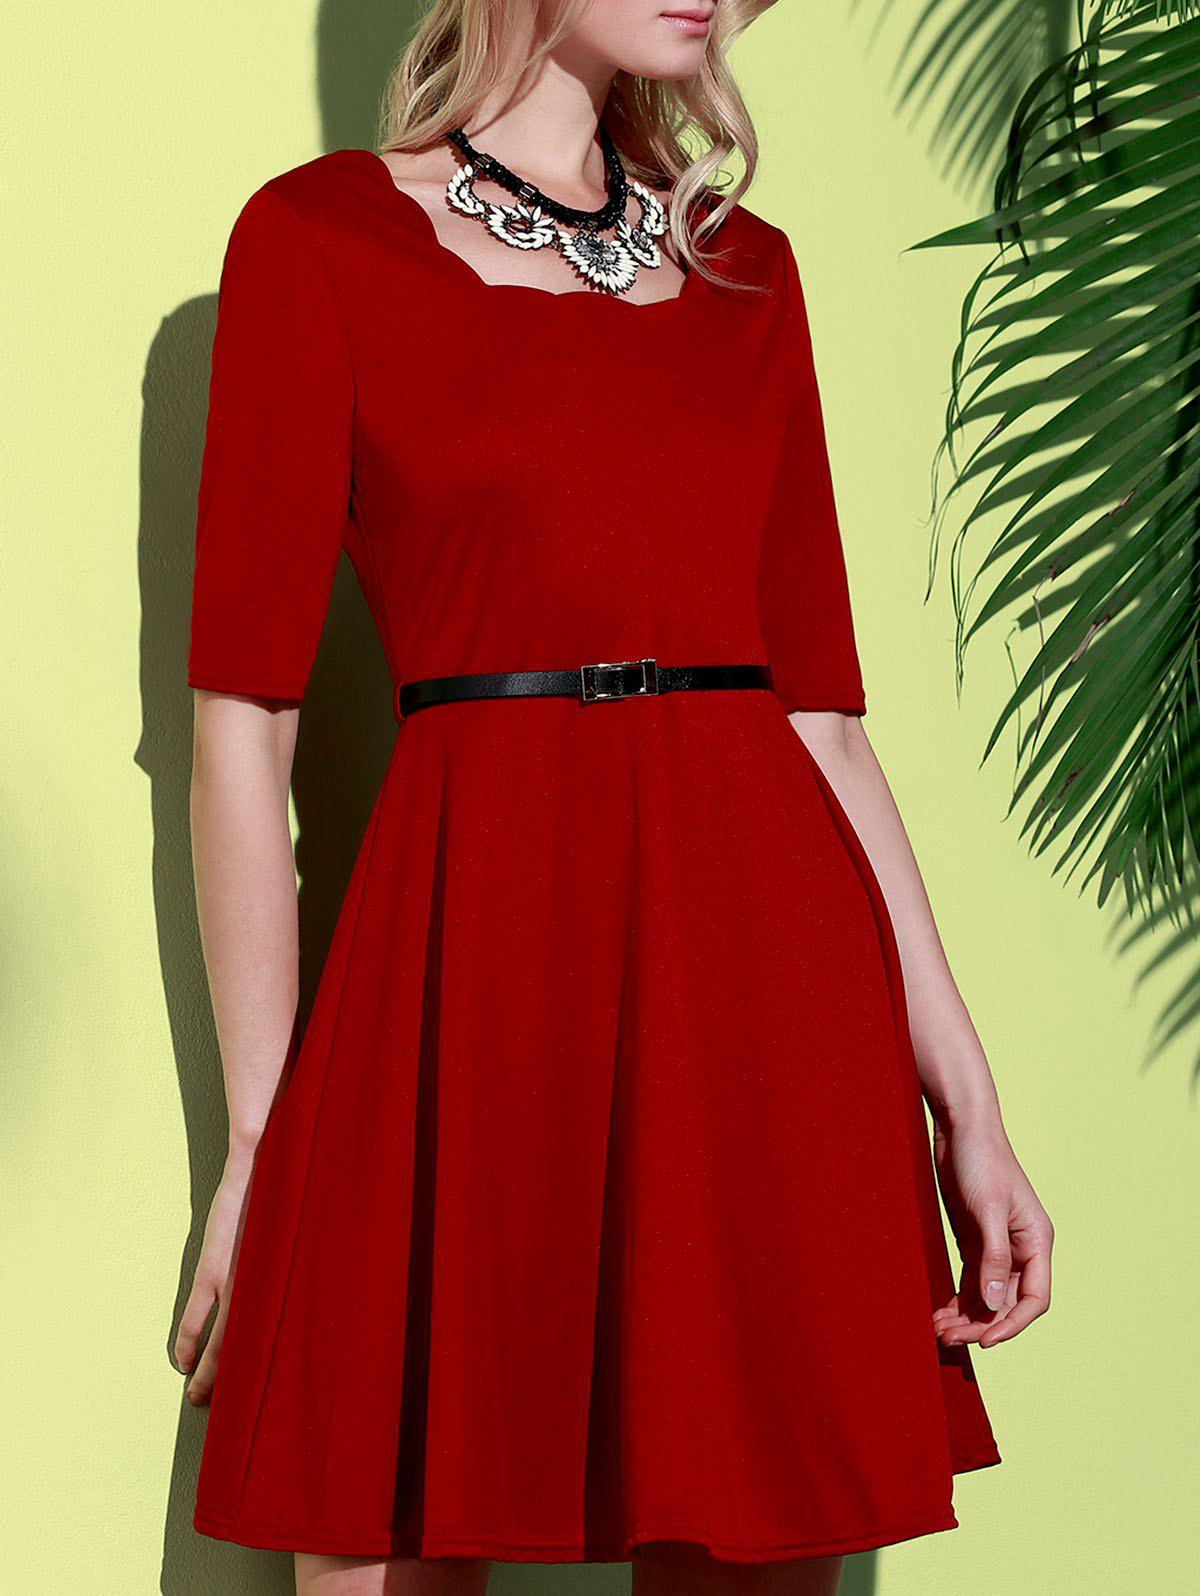 Stylish Half Sleeve Square Neck Pure Color A-Line Women's Dress - WINE RED S